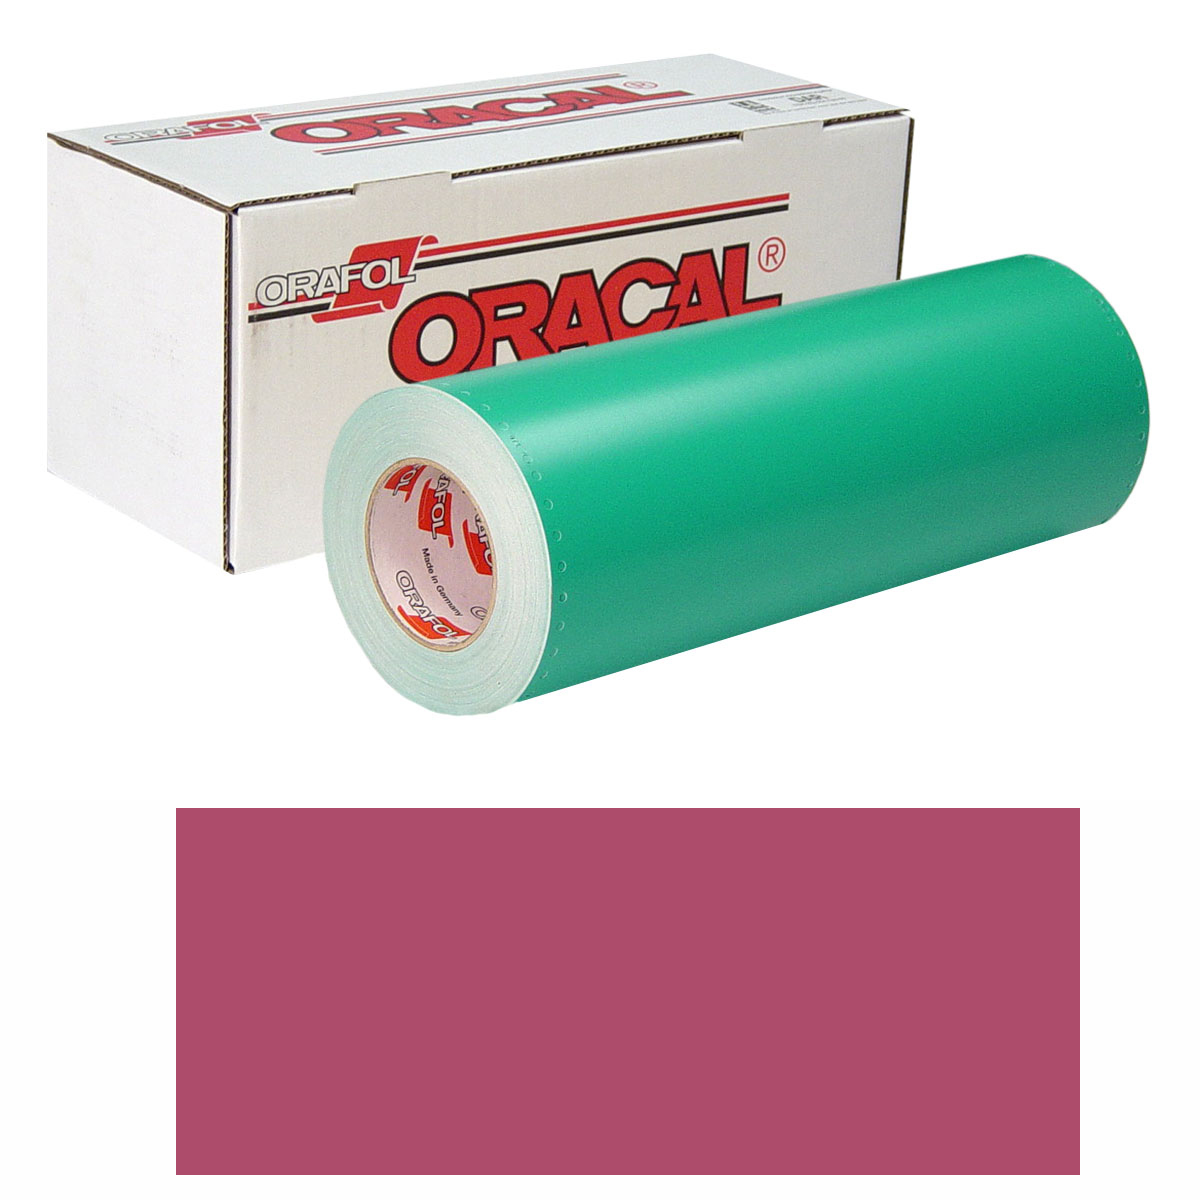 ORACAL 8500 Unp 24In X 10Yd 008 Heather Red